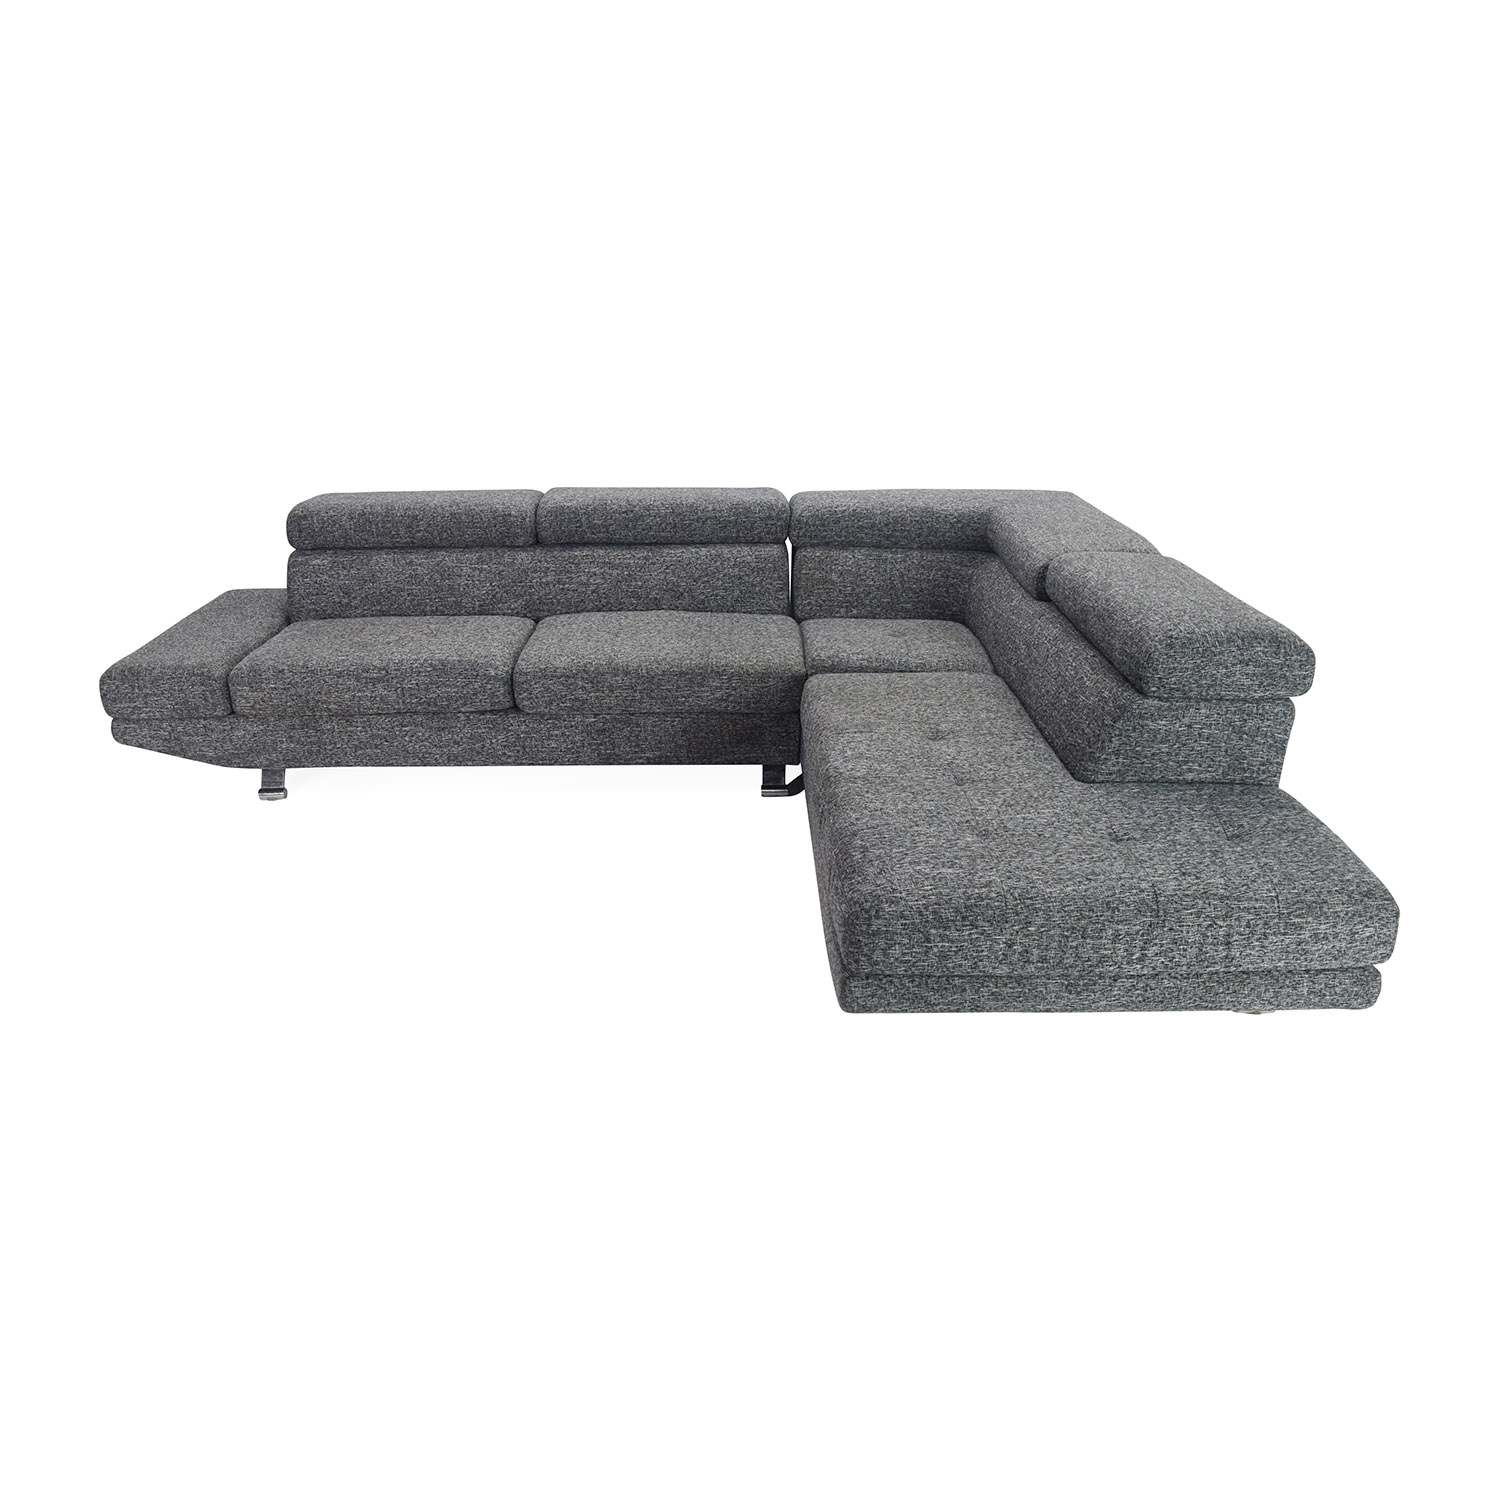 Gray Sectional Entertainment Couch Unknown brand